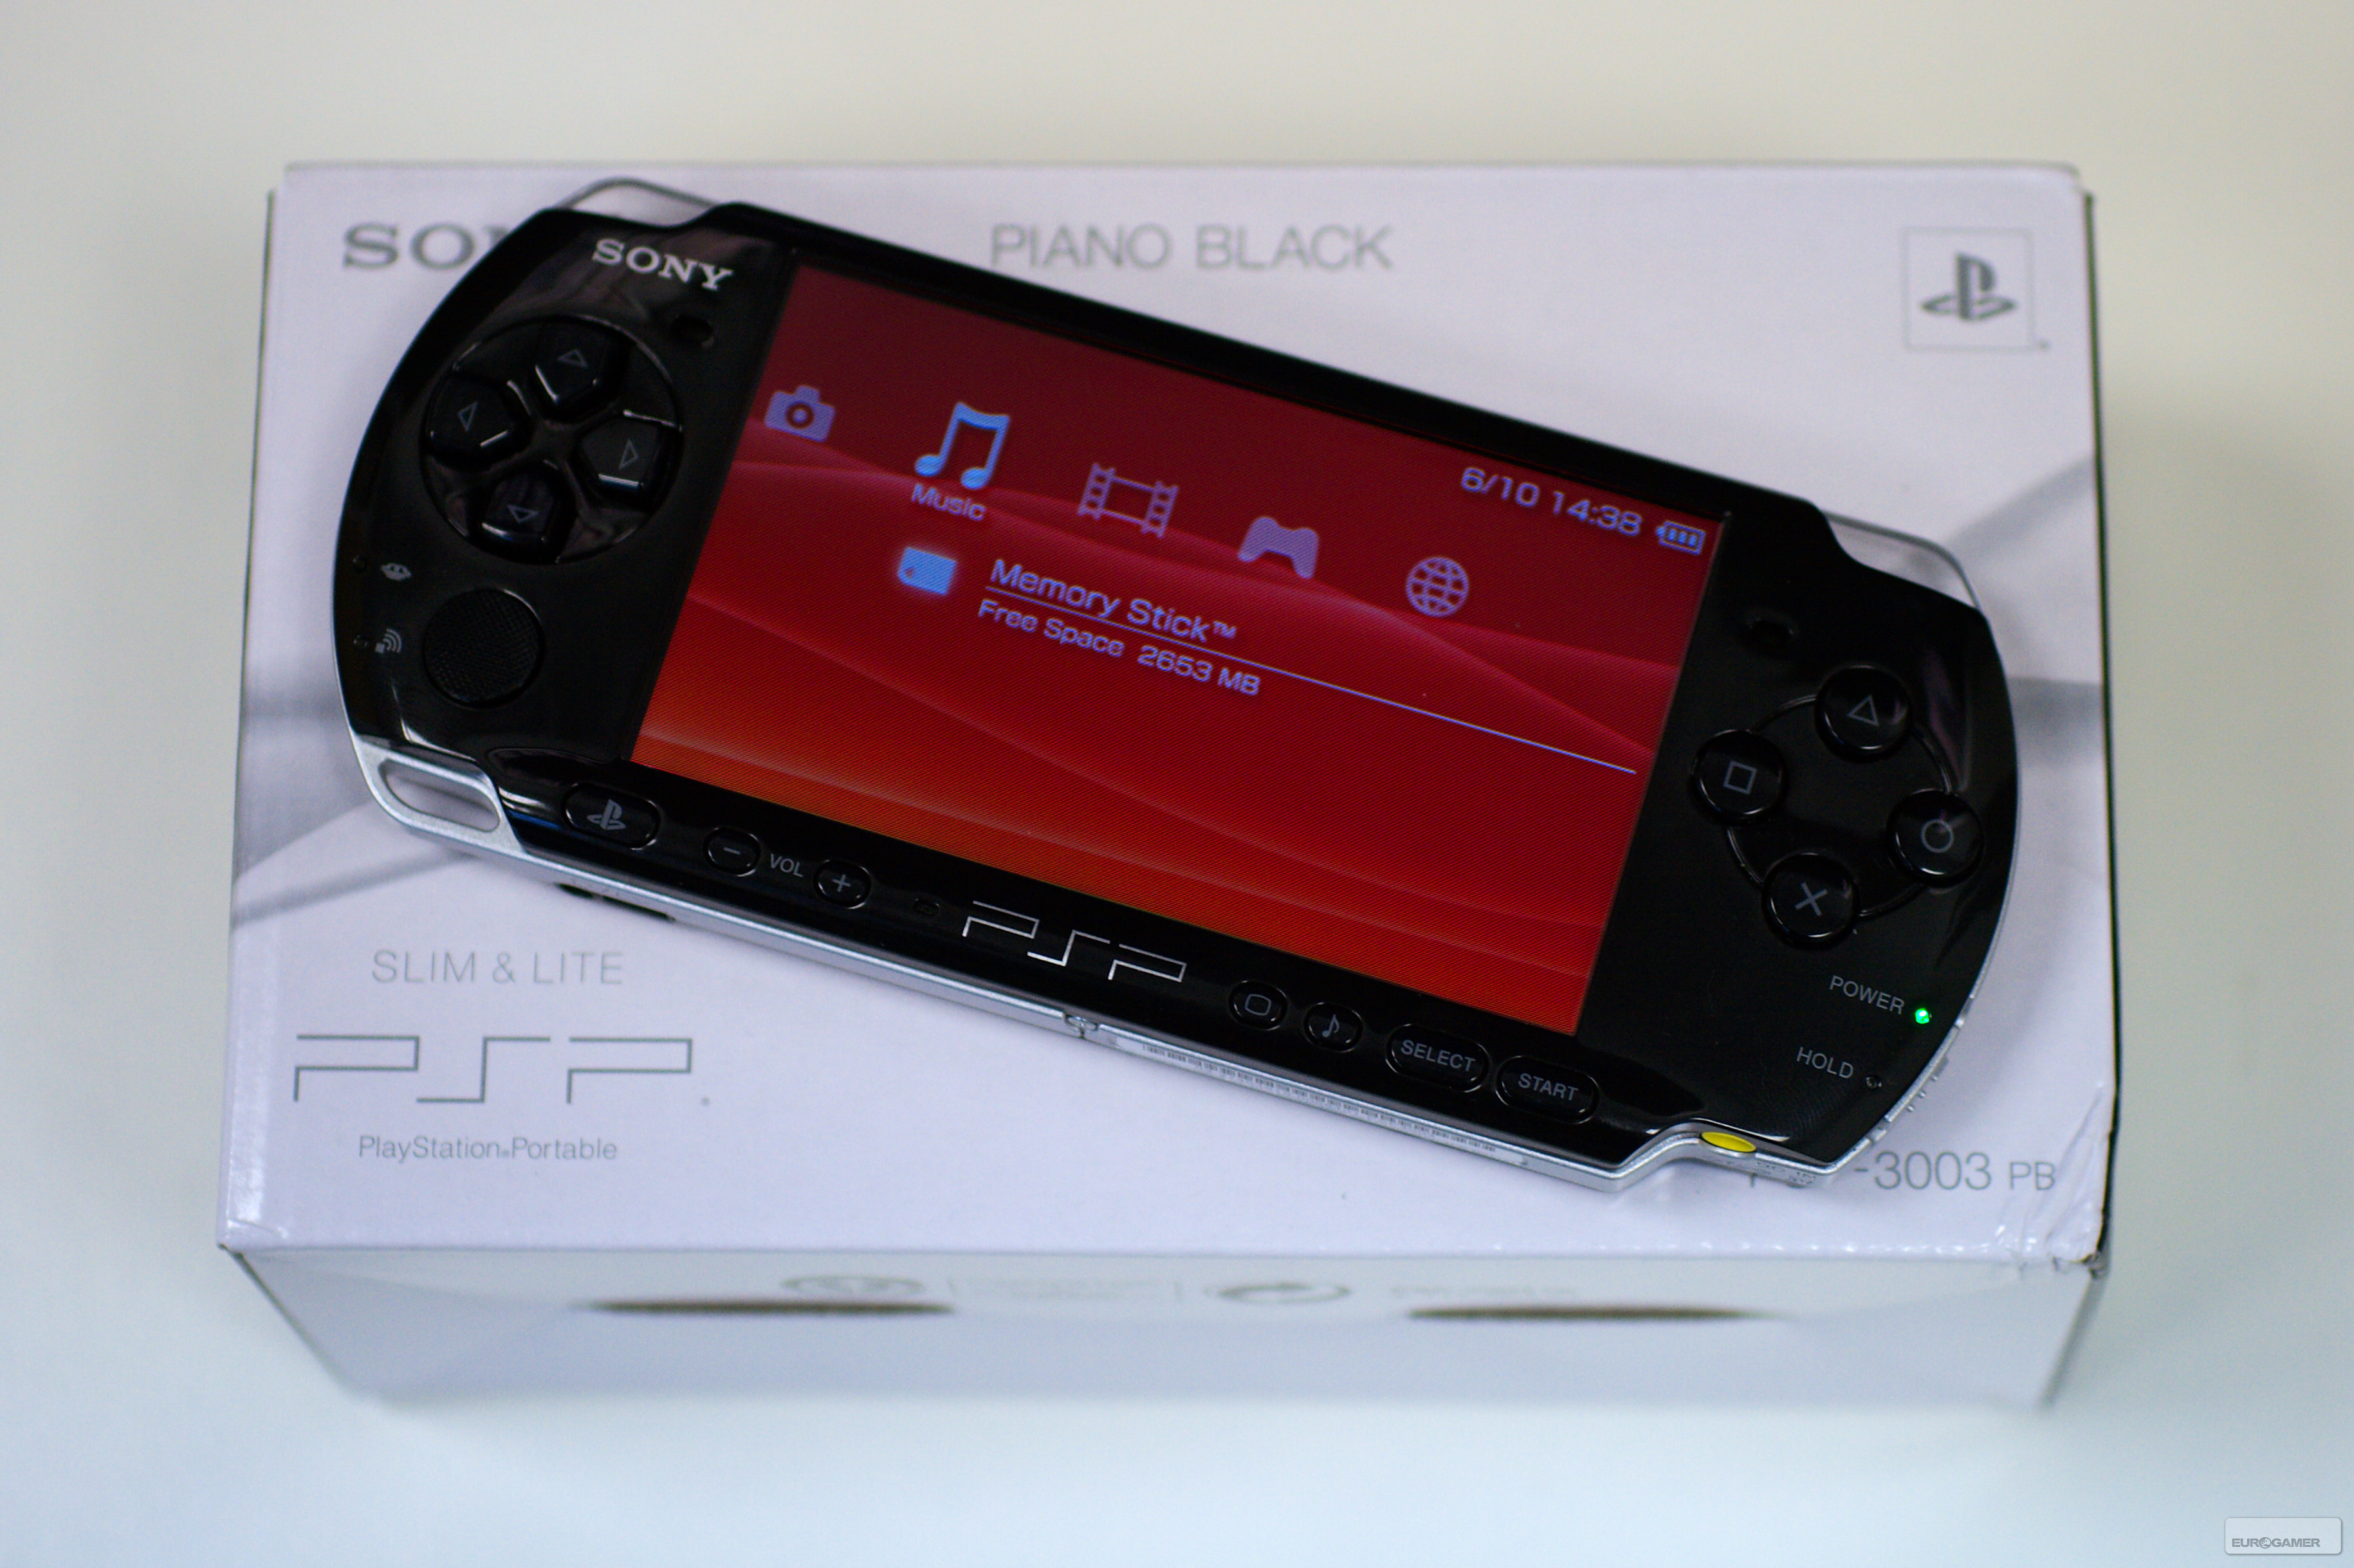 Download Free Games For Sony Psp 2000 Free Letitbitcompany